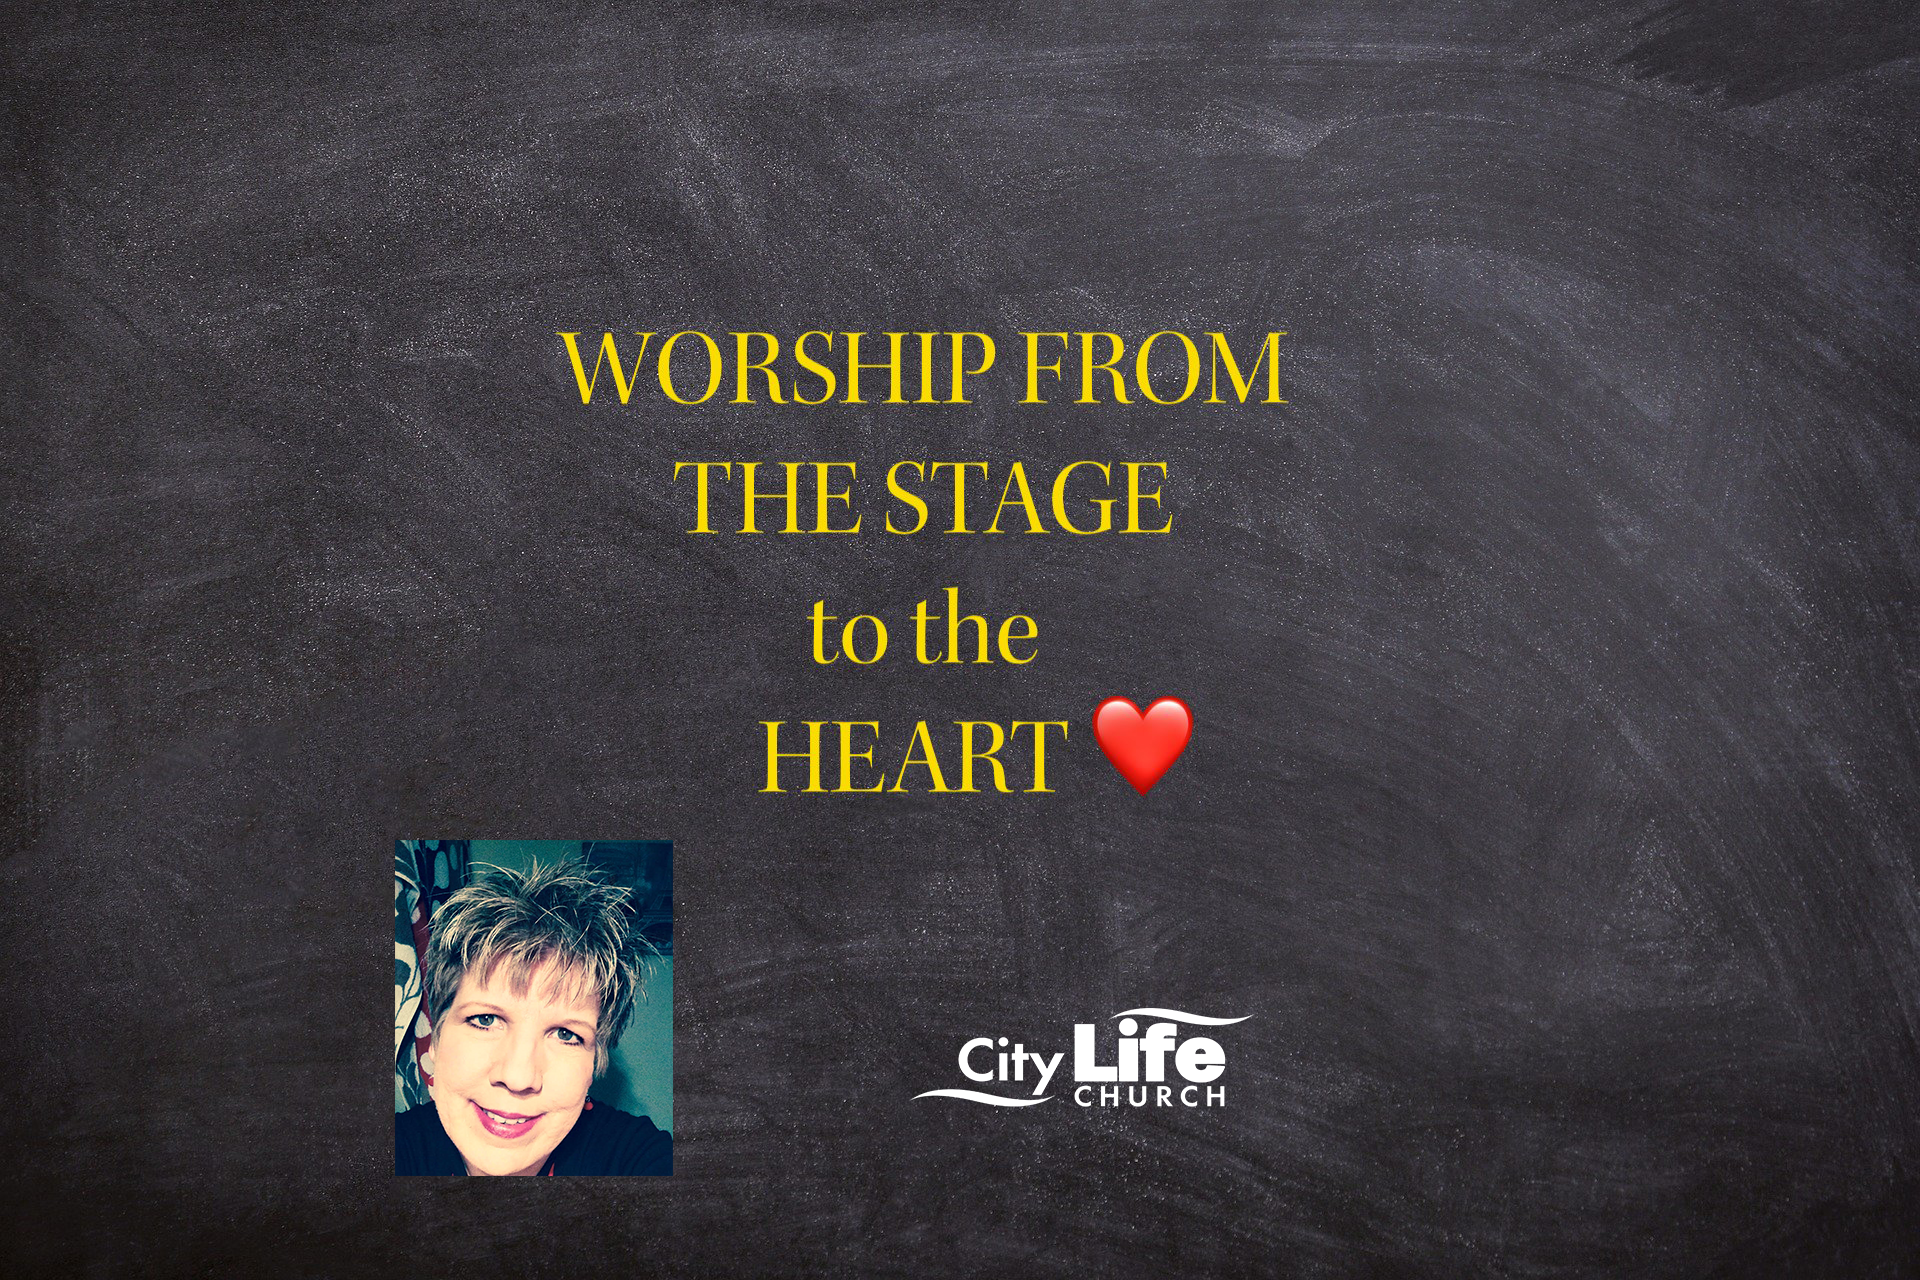 Worship from the Stage to the Heart